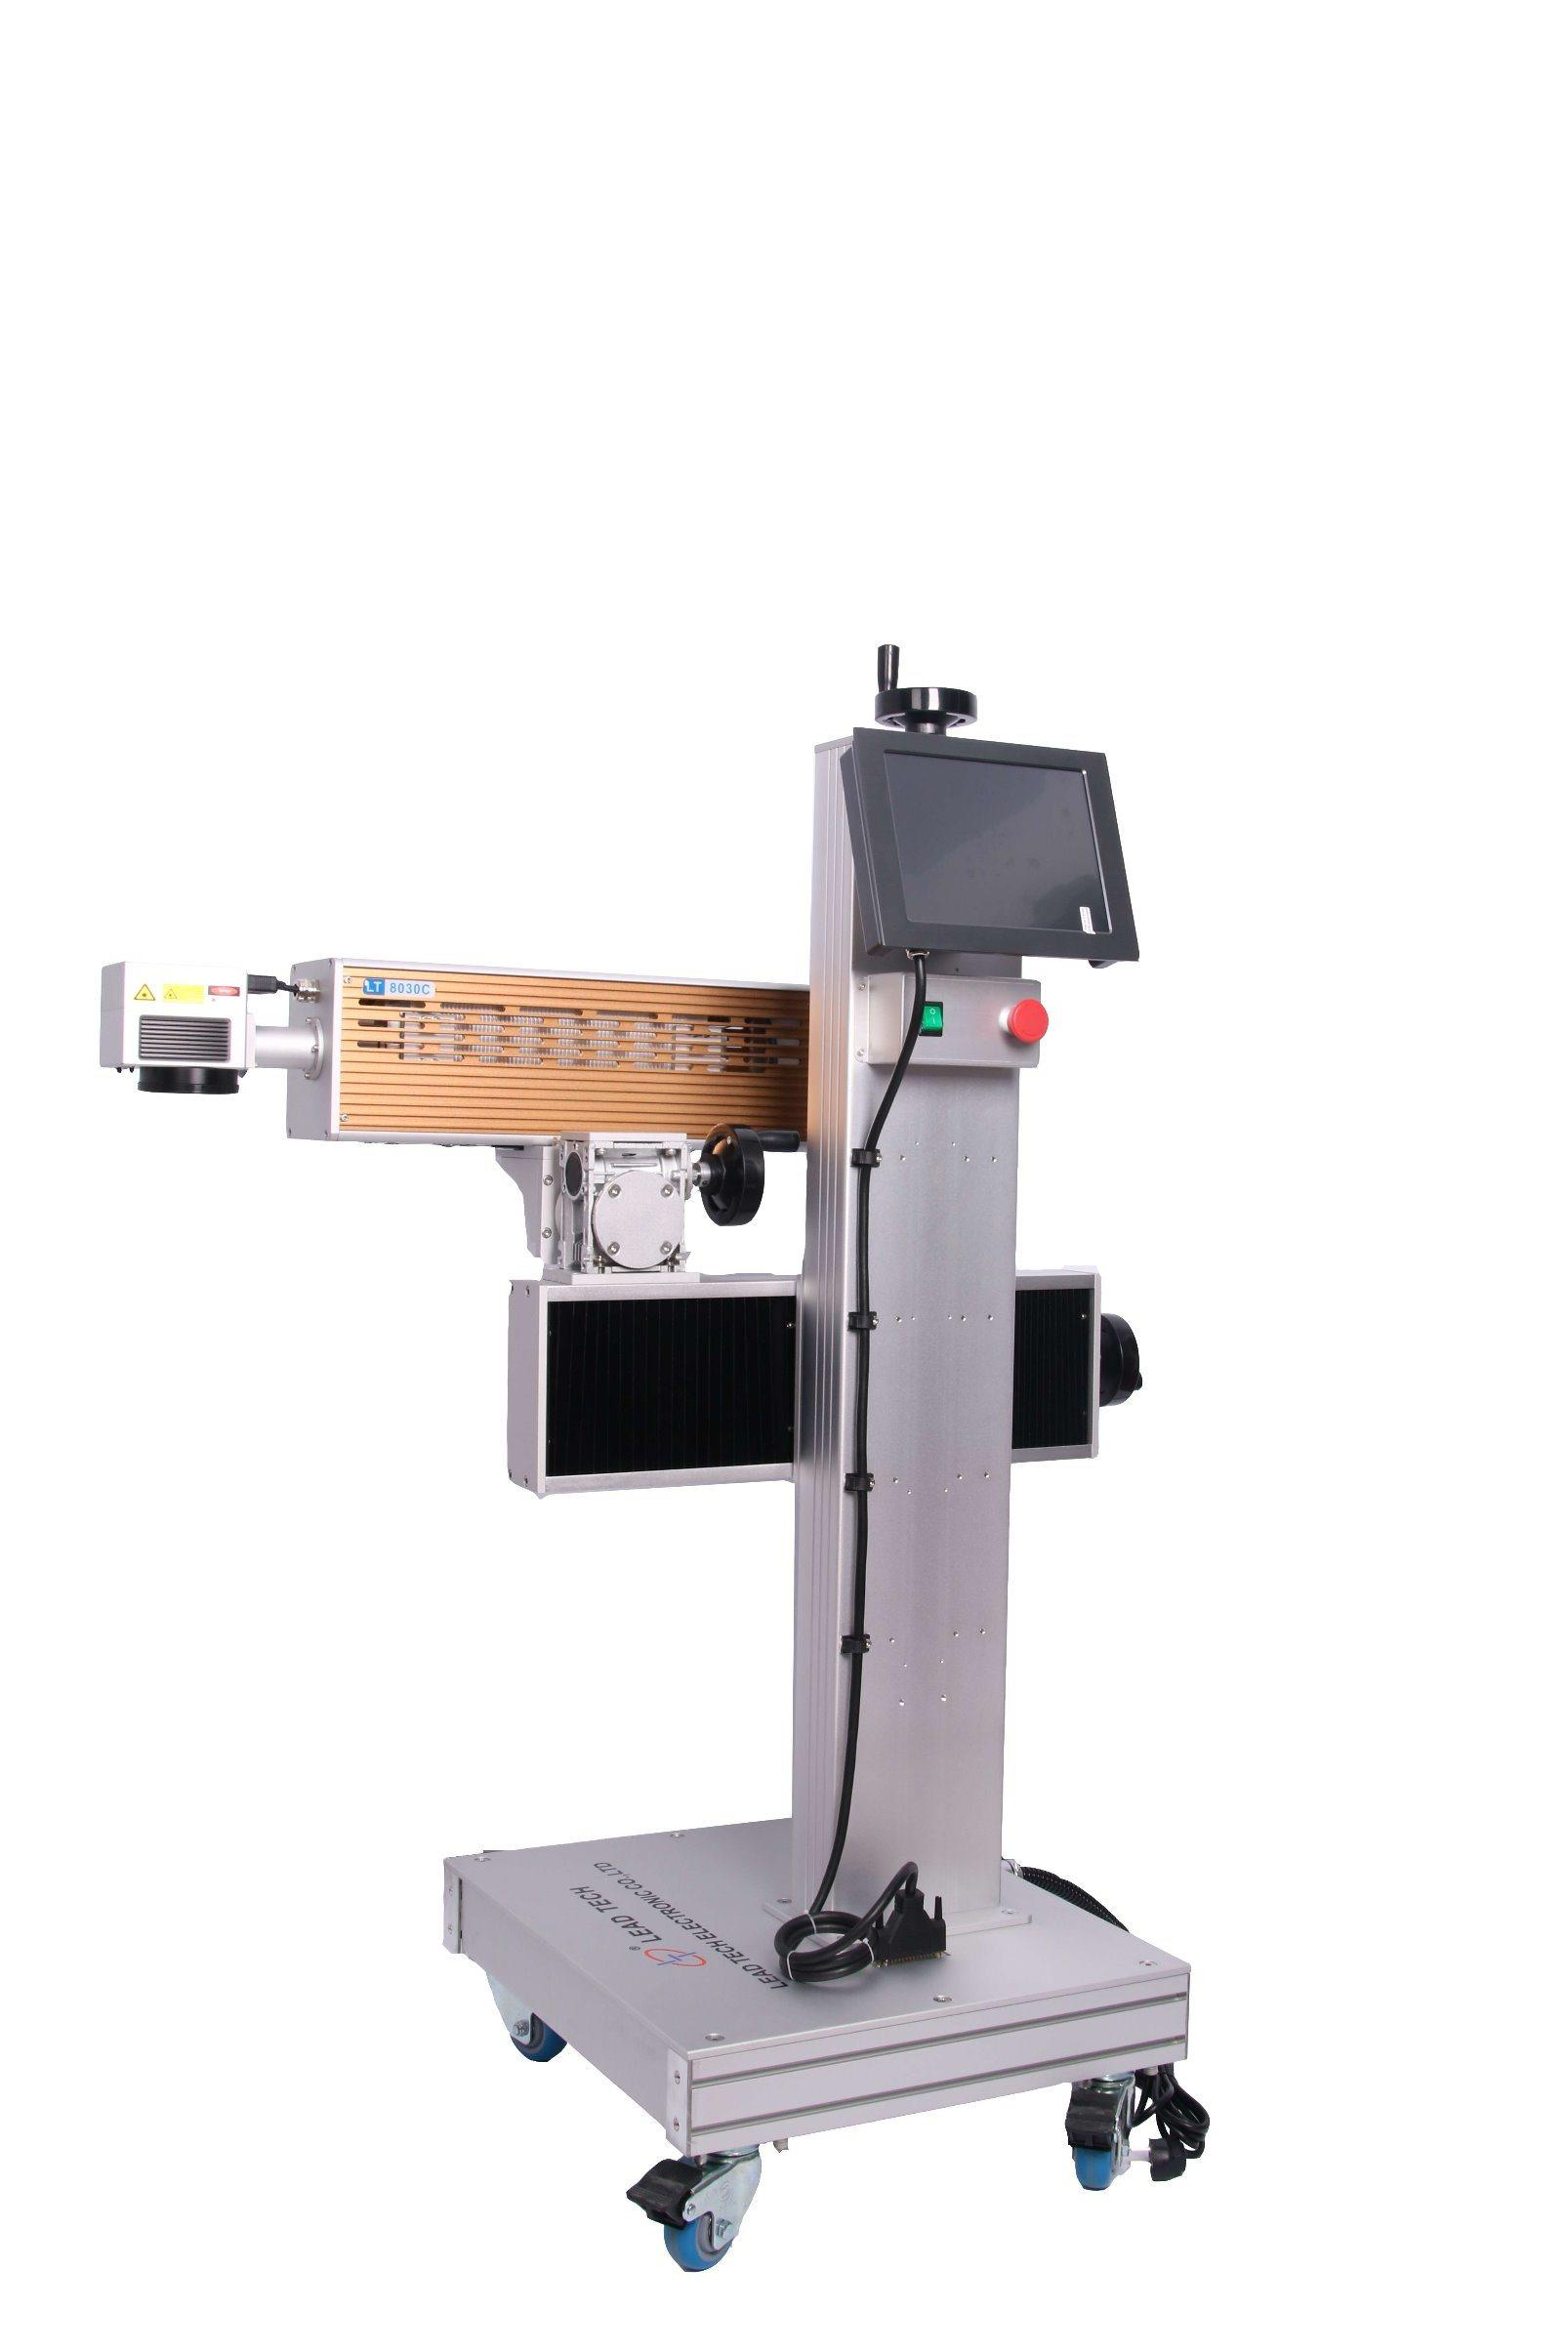 Lt8020c/Lt8030c CO2 20W/30W High Precision Laser Engraving Printer for Stainless Steel Metal Plate Silver Gold